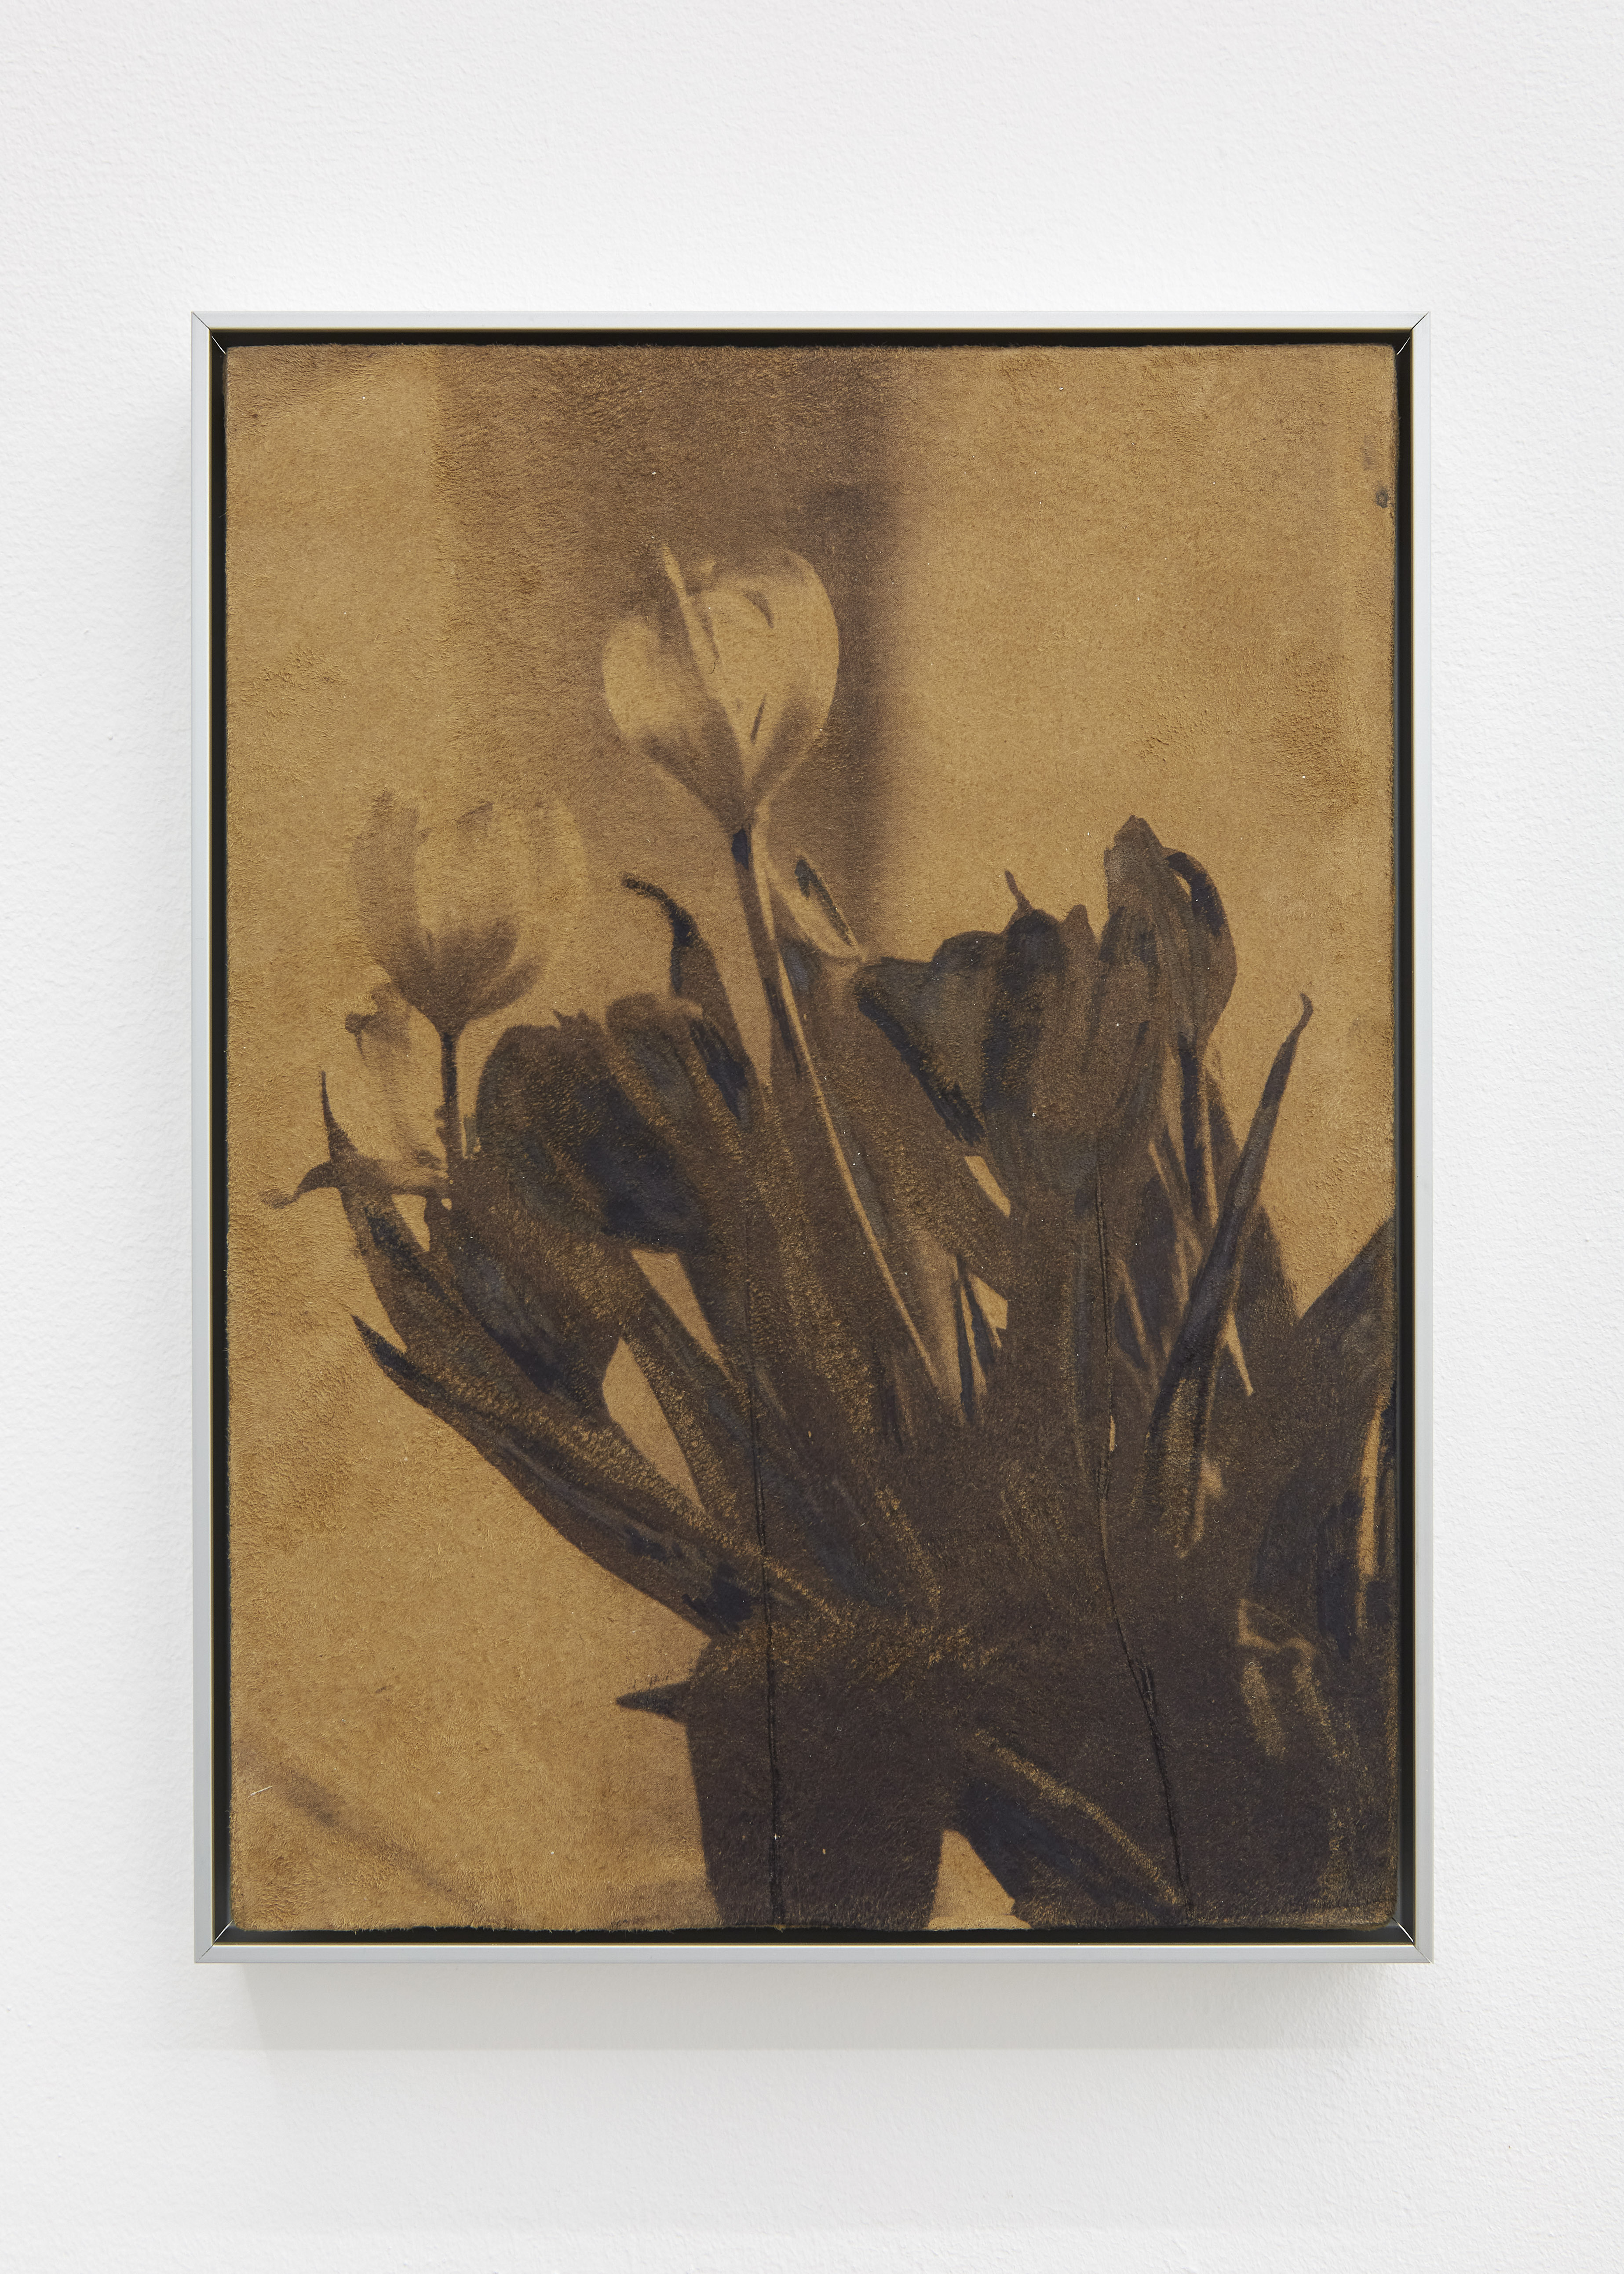 Tulips, 2021. Oil and watercolour on suede, aluminium frame, 25.5 x 19.5 cm